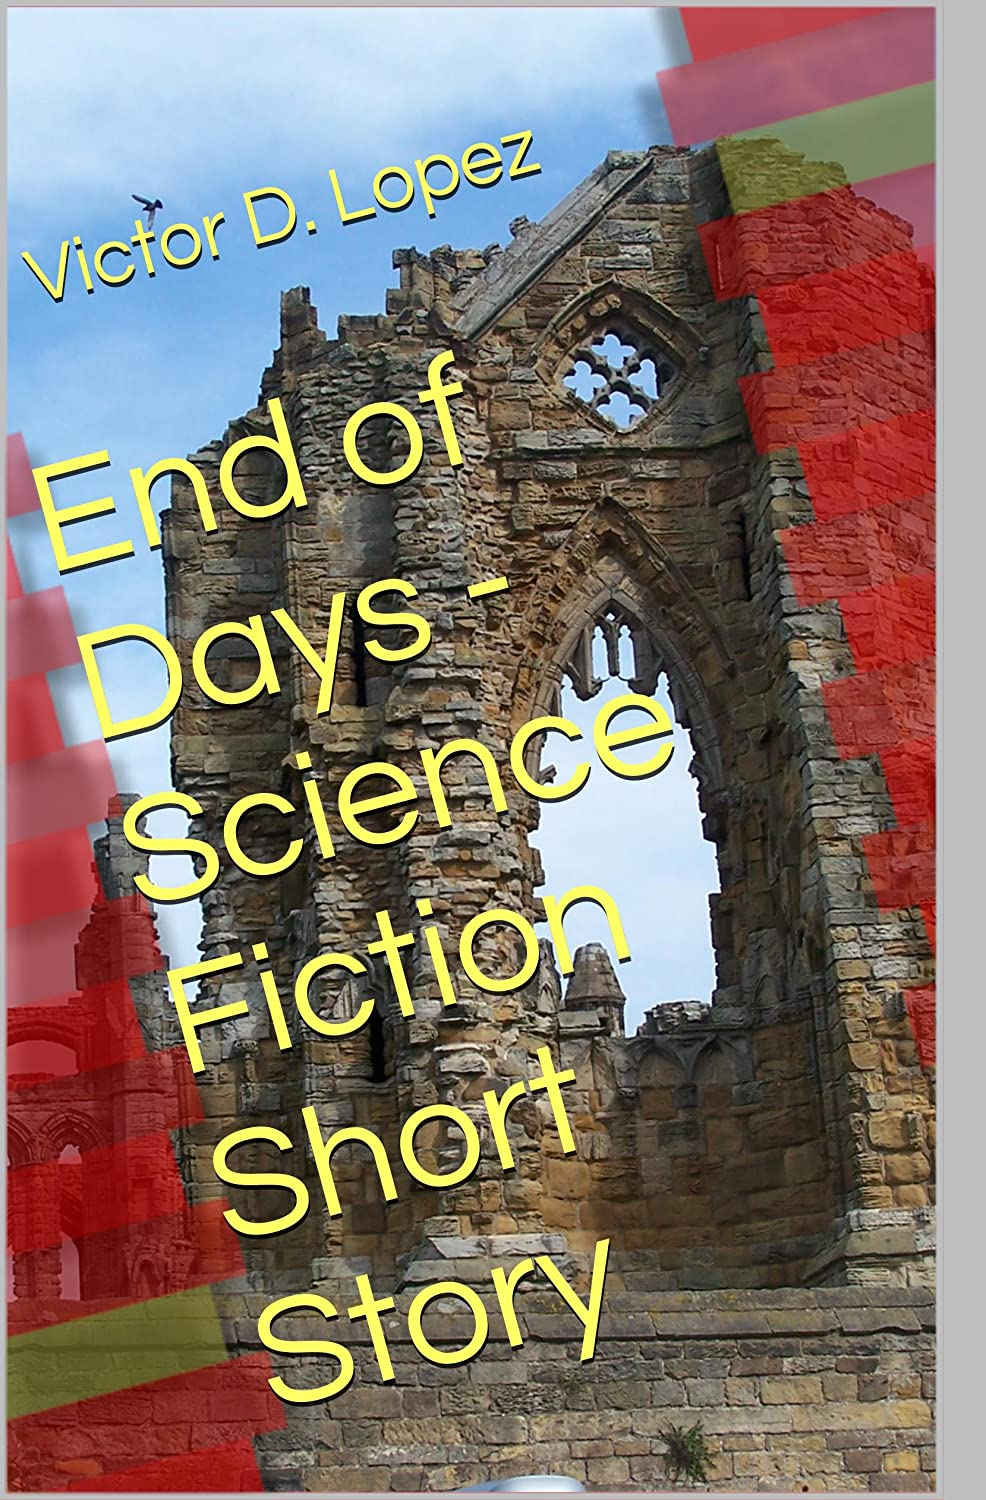 http://www.amazon.com/Days-Science-Fiction-Short-Story-ebook/dp/B0099AQL0K/ref=la_B001KMII74_1_15?s=books&ie=UTF8&qid=1431097468&sr=1-15